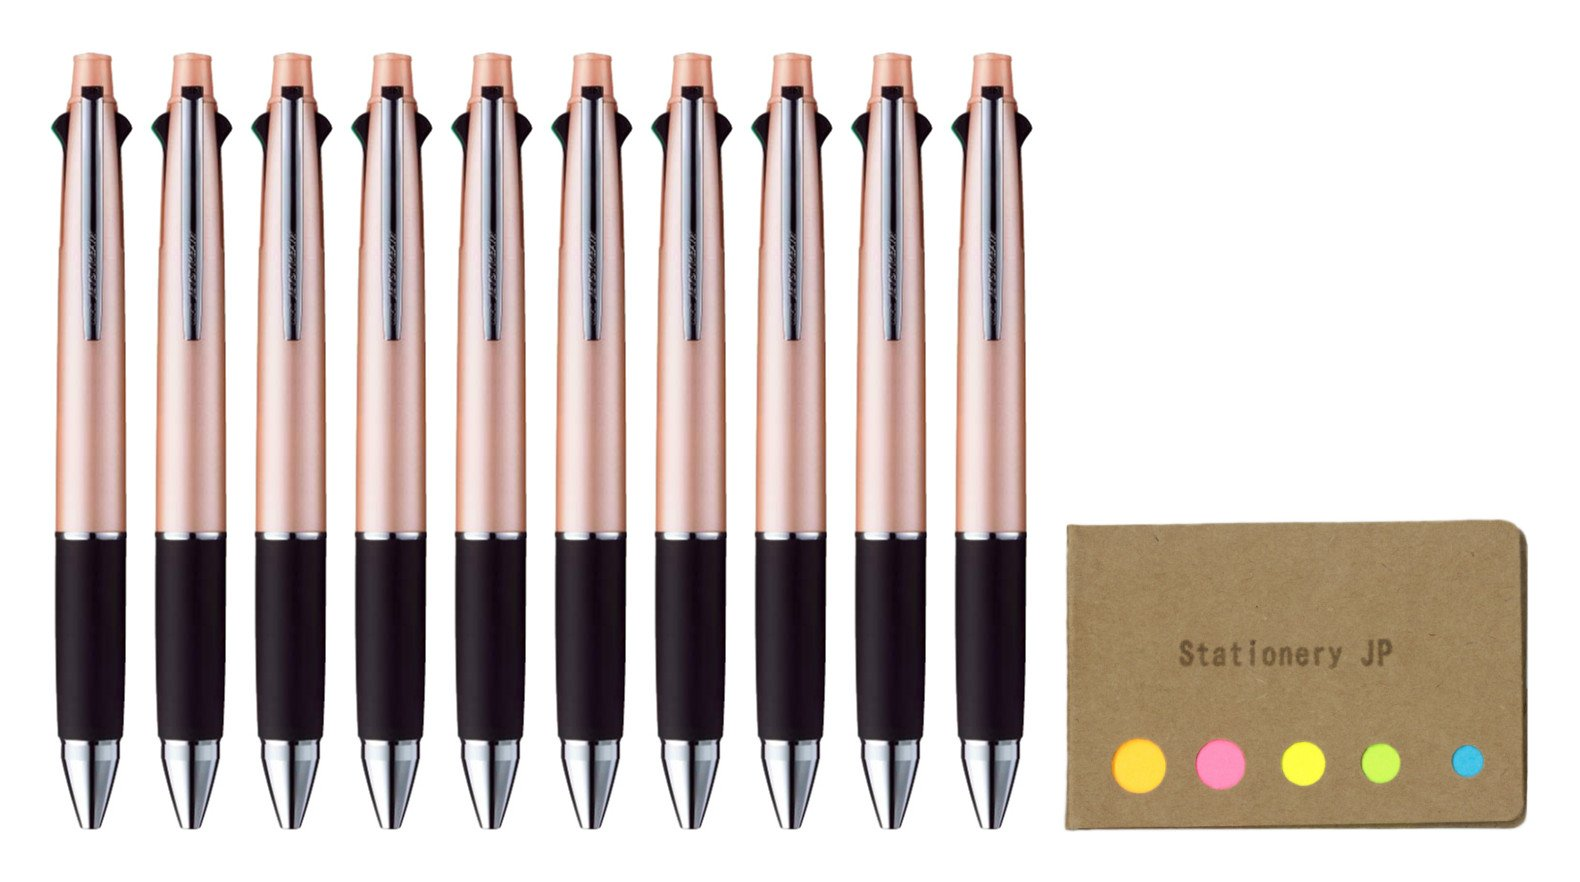 Uni-ball Jetstream 4&1 4 Color Extra Fine Point 0.38mm Ballpoint Multi Pen, Baby Pink Barrel, 10-pack, Sticky Notes Value Set